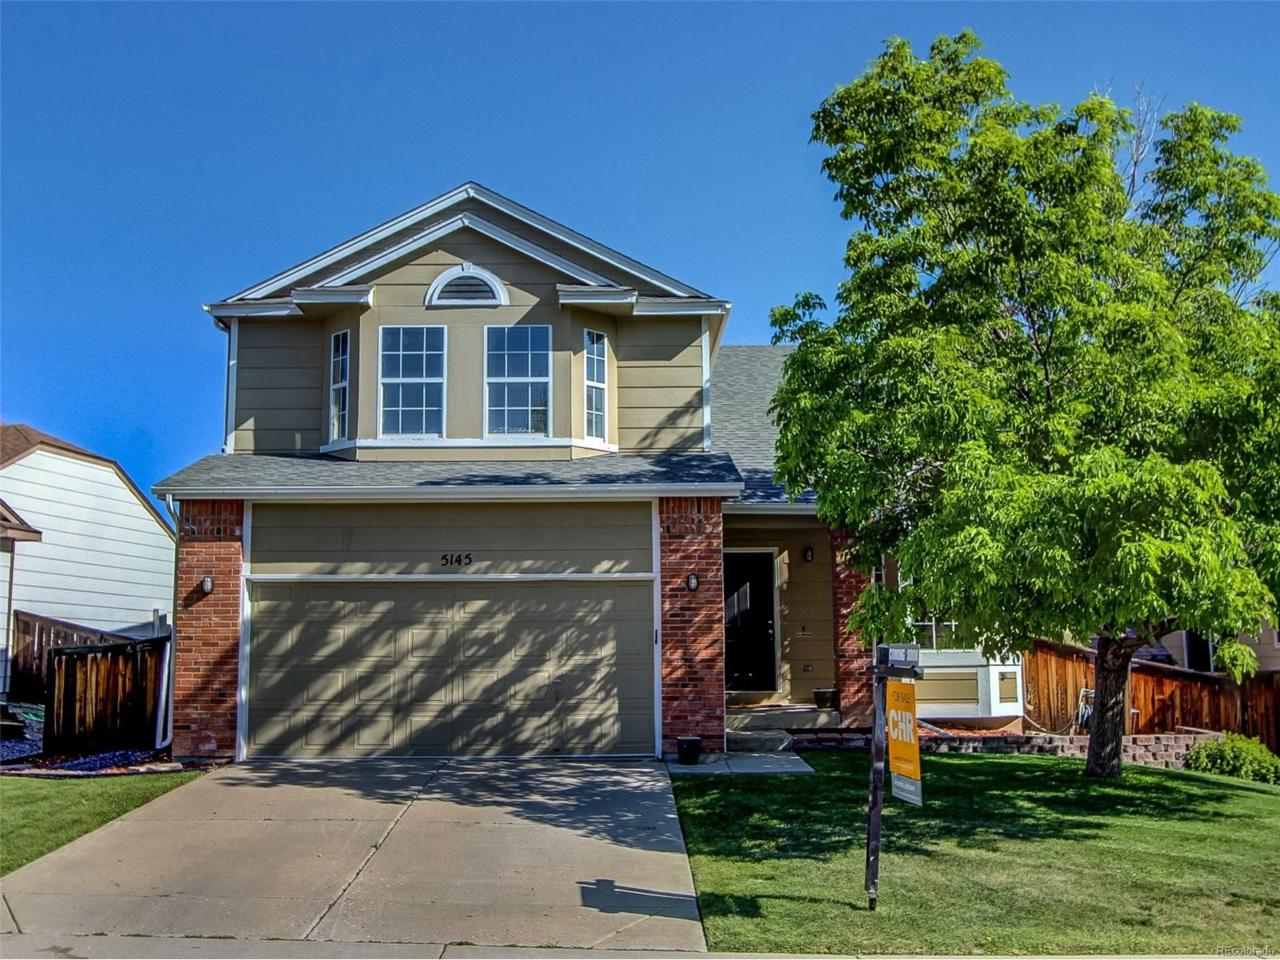 5145 Weeping Willow Circle, Highlands Ranch, CO 80130 (MLS #6877206) :: 8z Real Estate